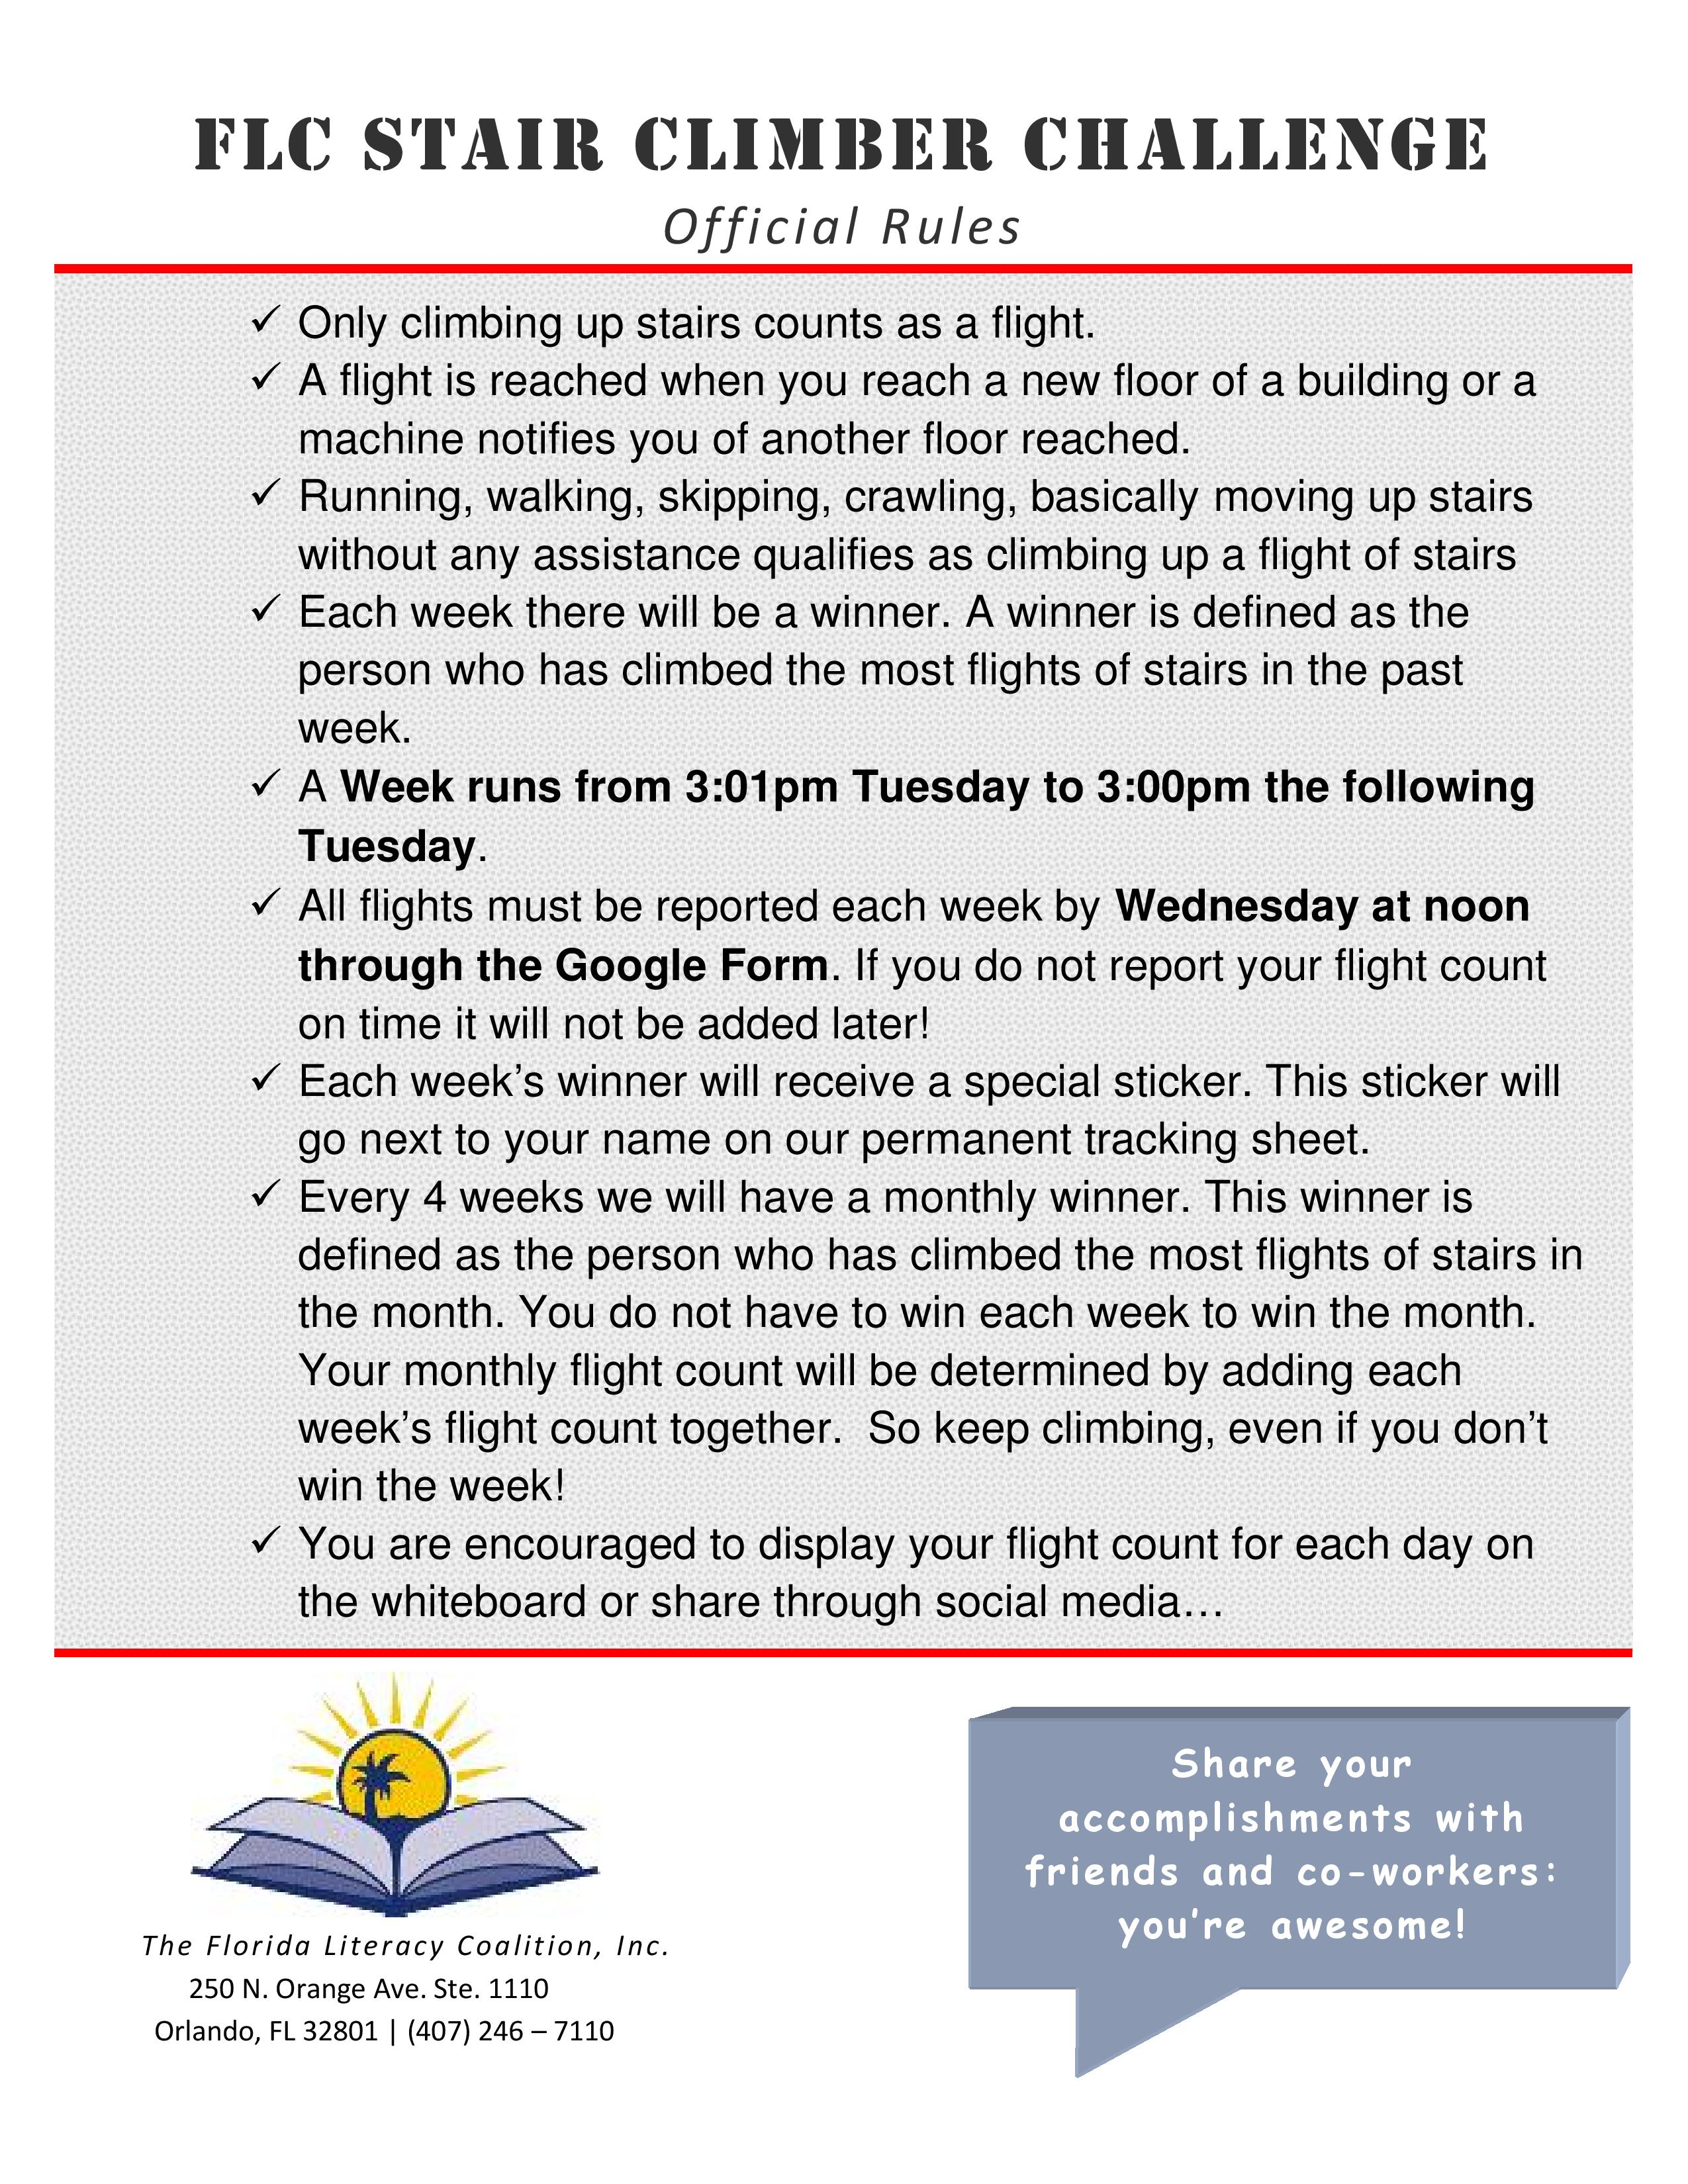 Stair Climber Challenge FLC Official Rules